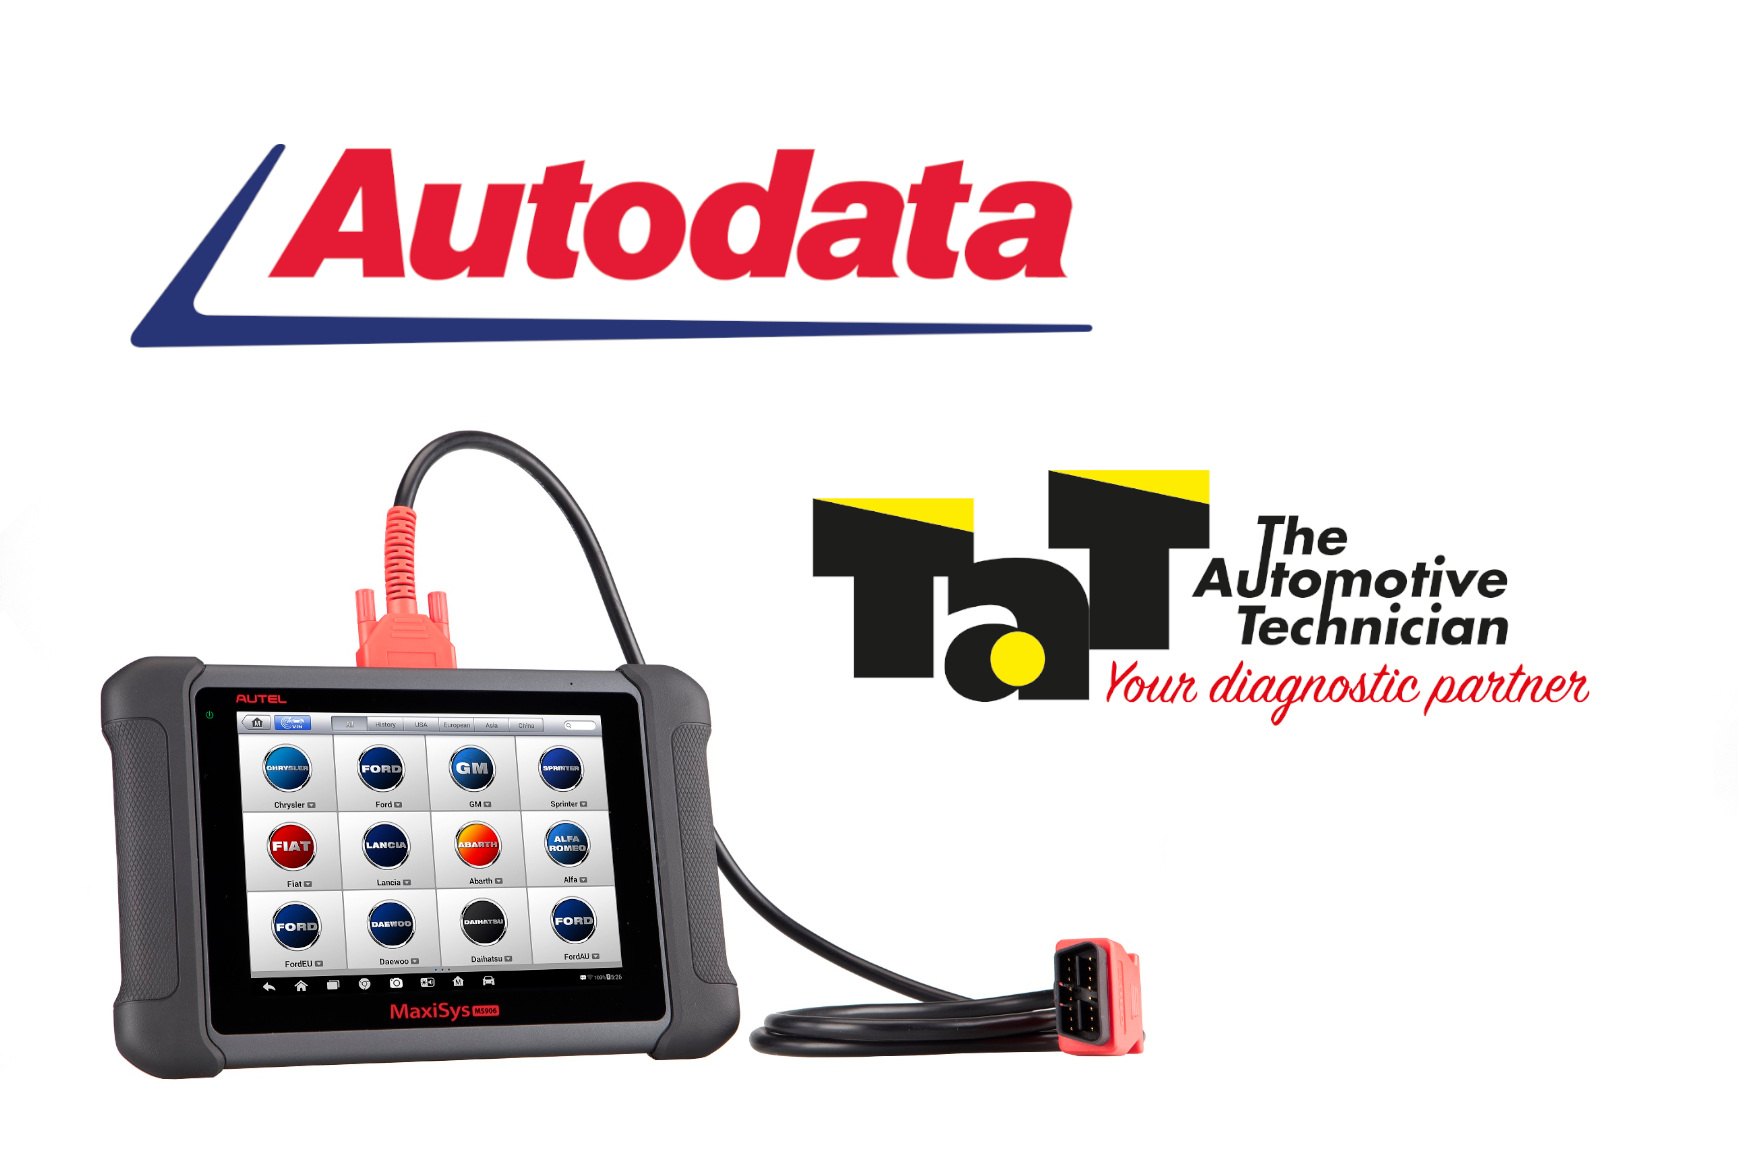 Vehicle Diagnostics - We have the tools and knowledge to tackle just about any vehicle diagnostic challenge thrown at us. We use the latest electronic diagnostic equipment, and have access to some of the best knowledge databases the Automotive Industry has to offer. If we can't find the problem, we generally won't charge.